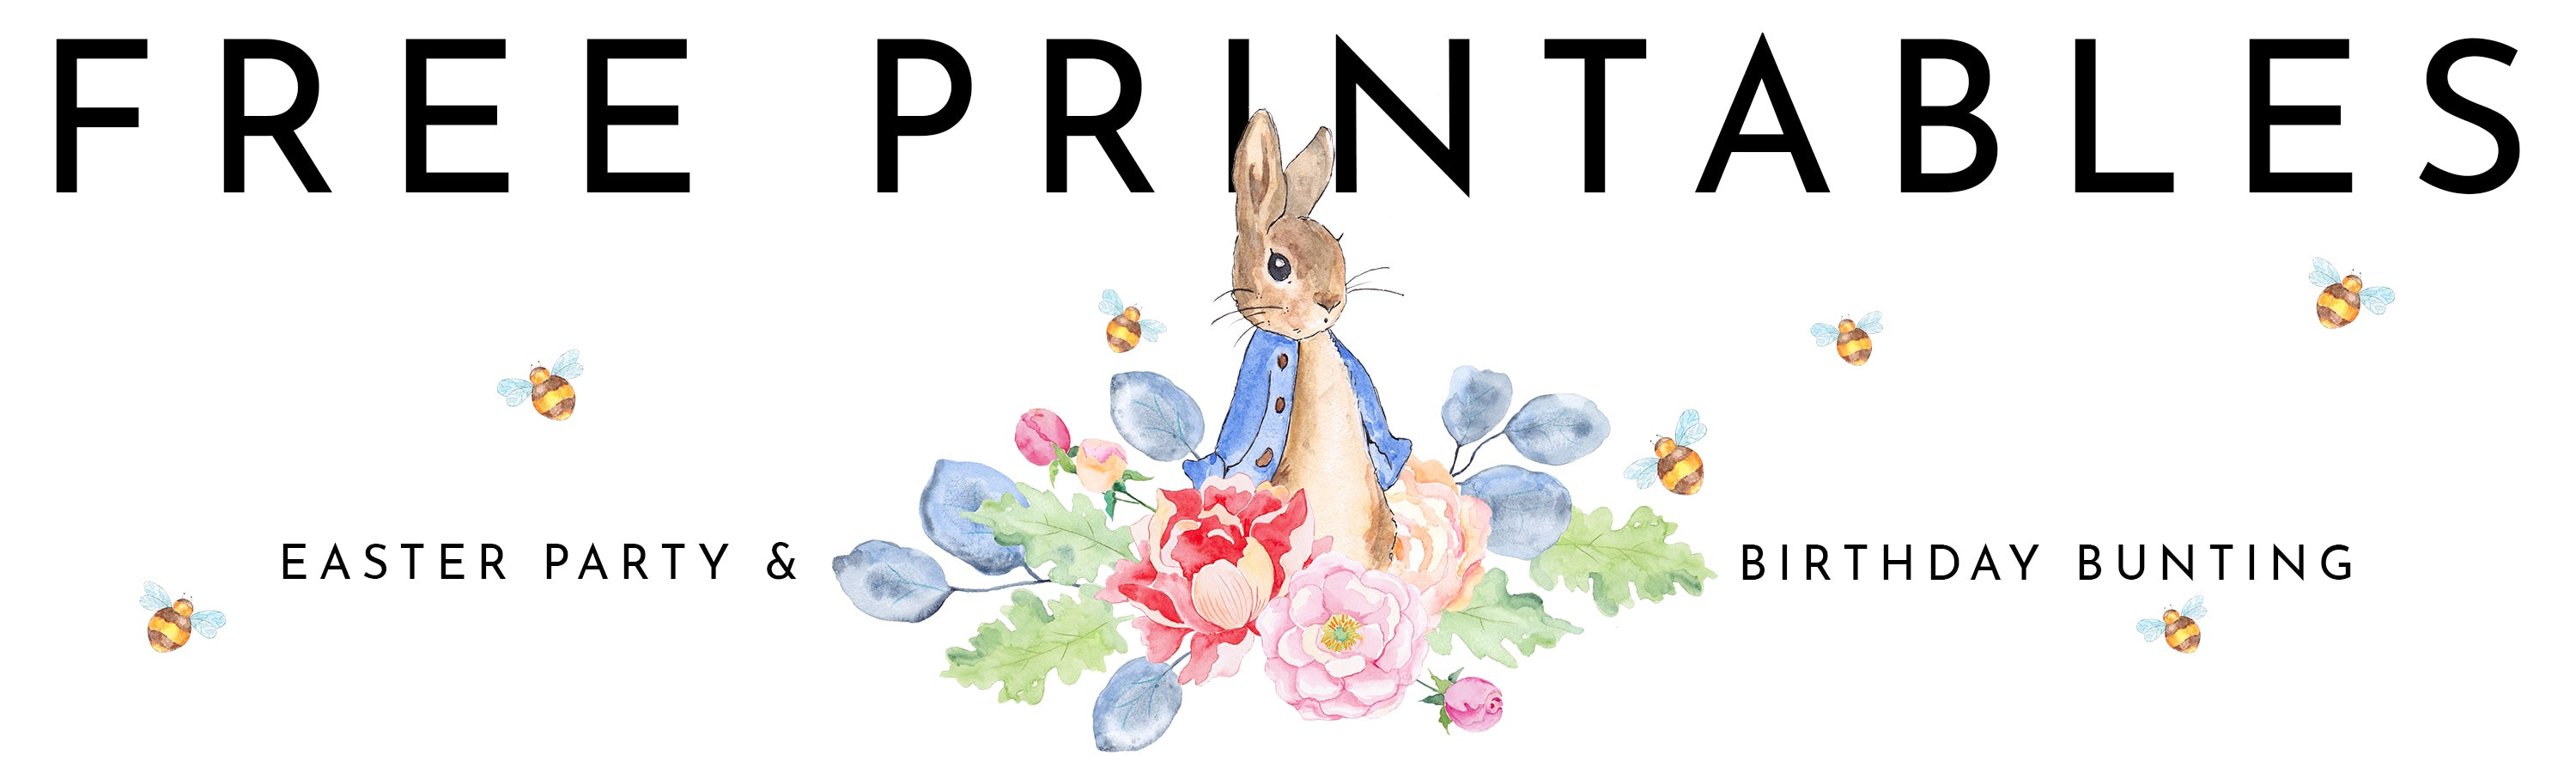 Free printables and digital downloads for kids